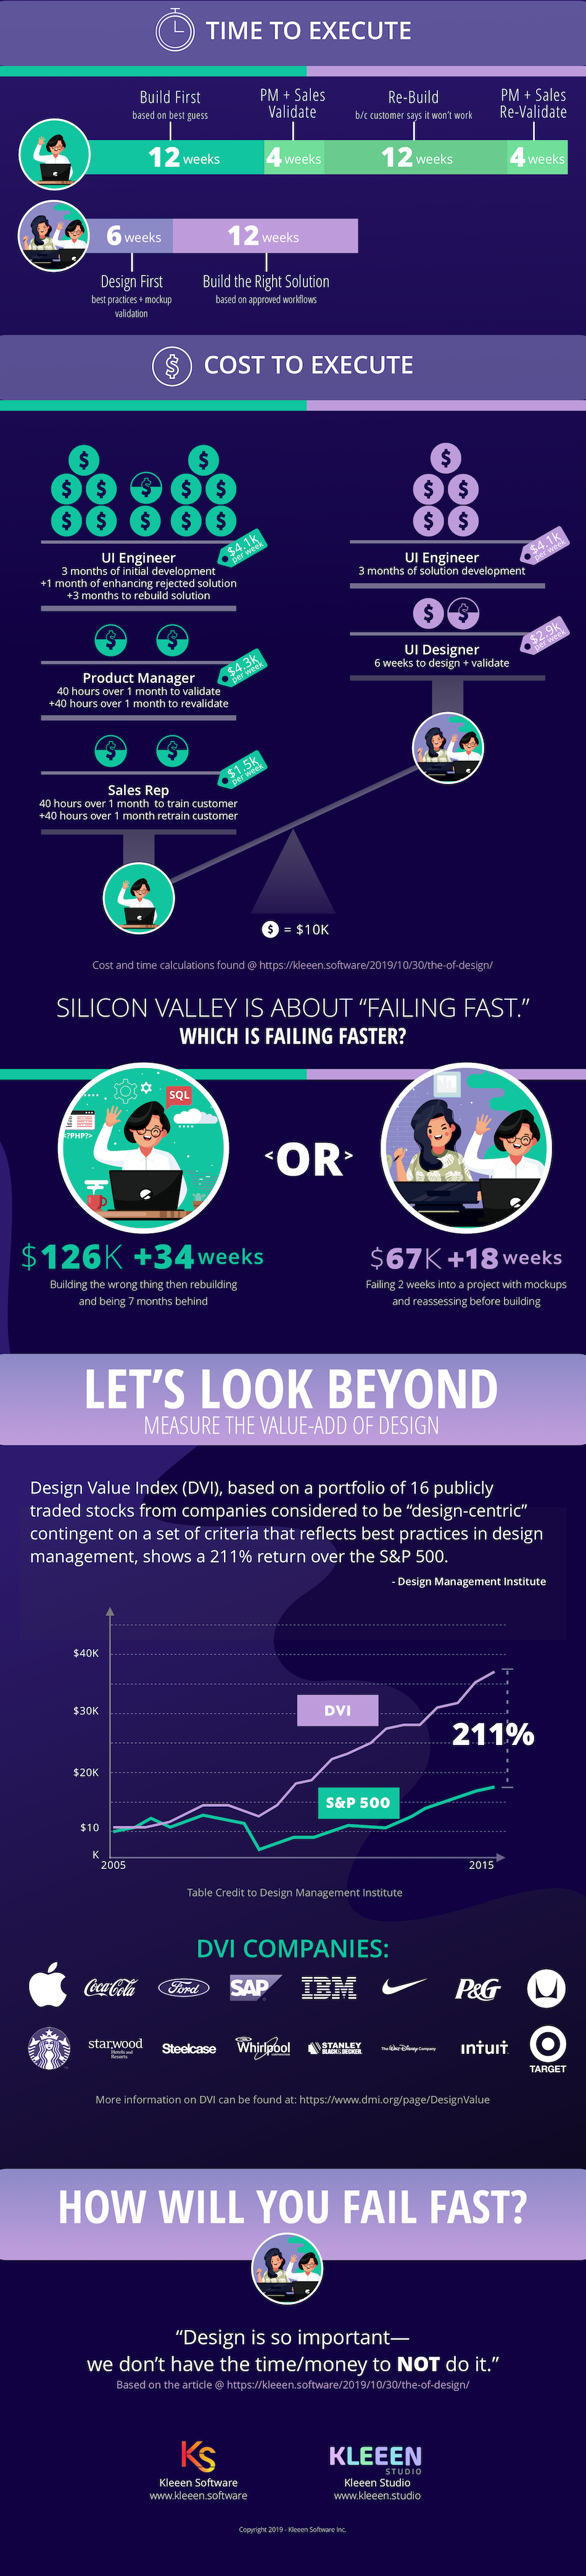 the$$ofDesign-Kleeen-infographic.2